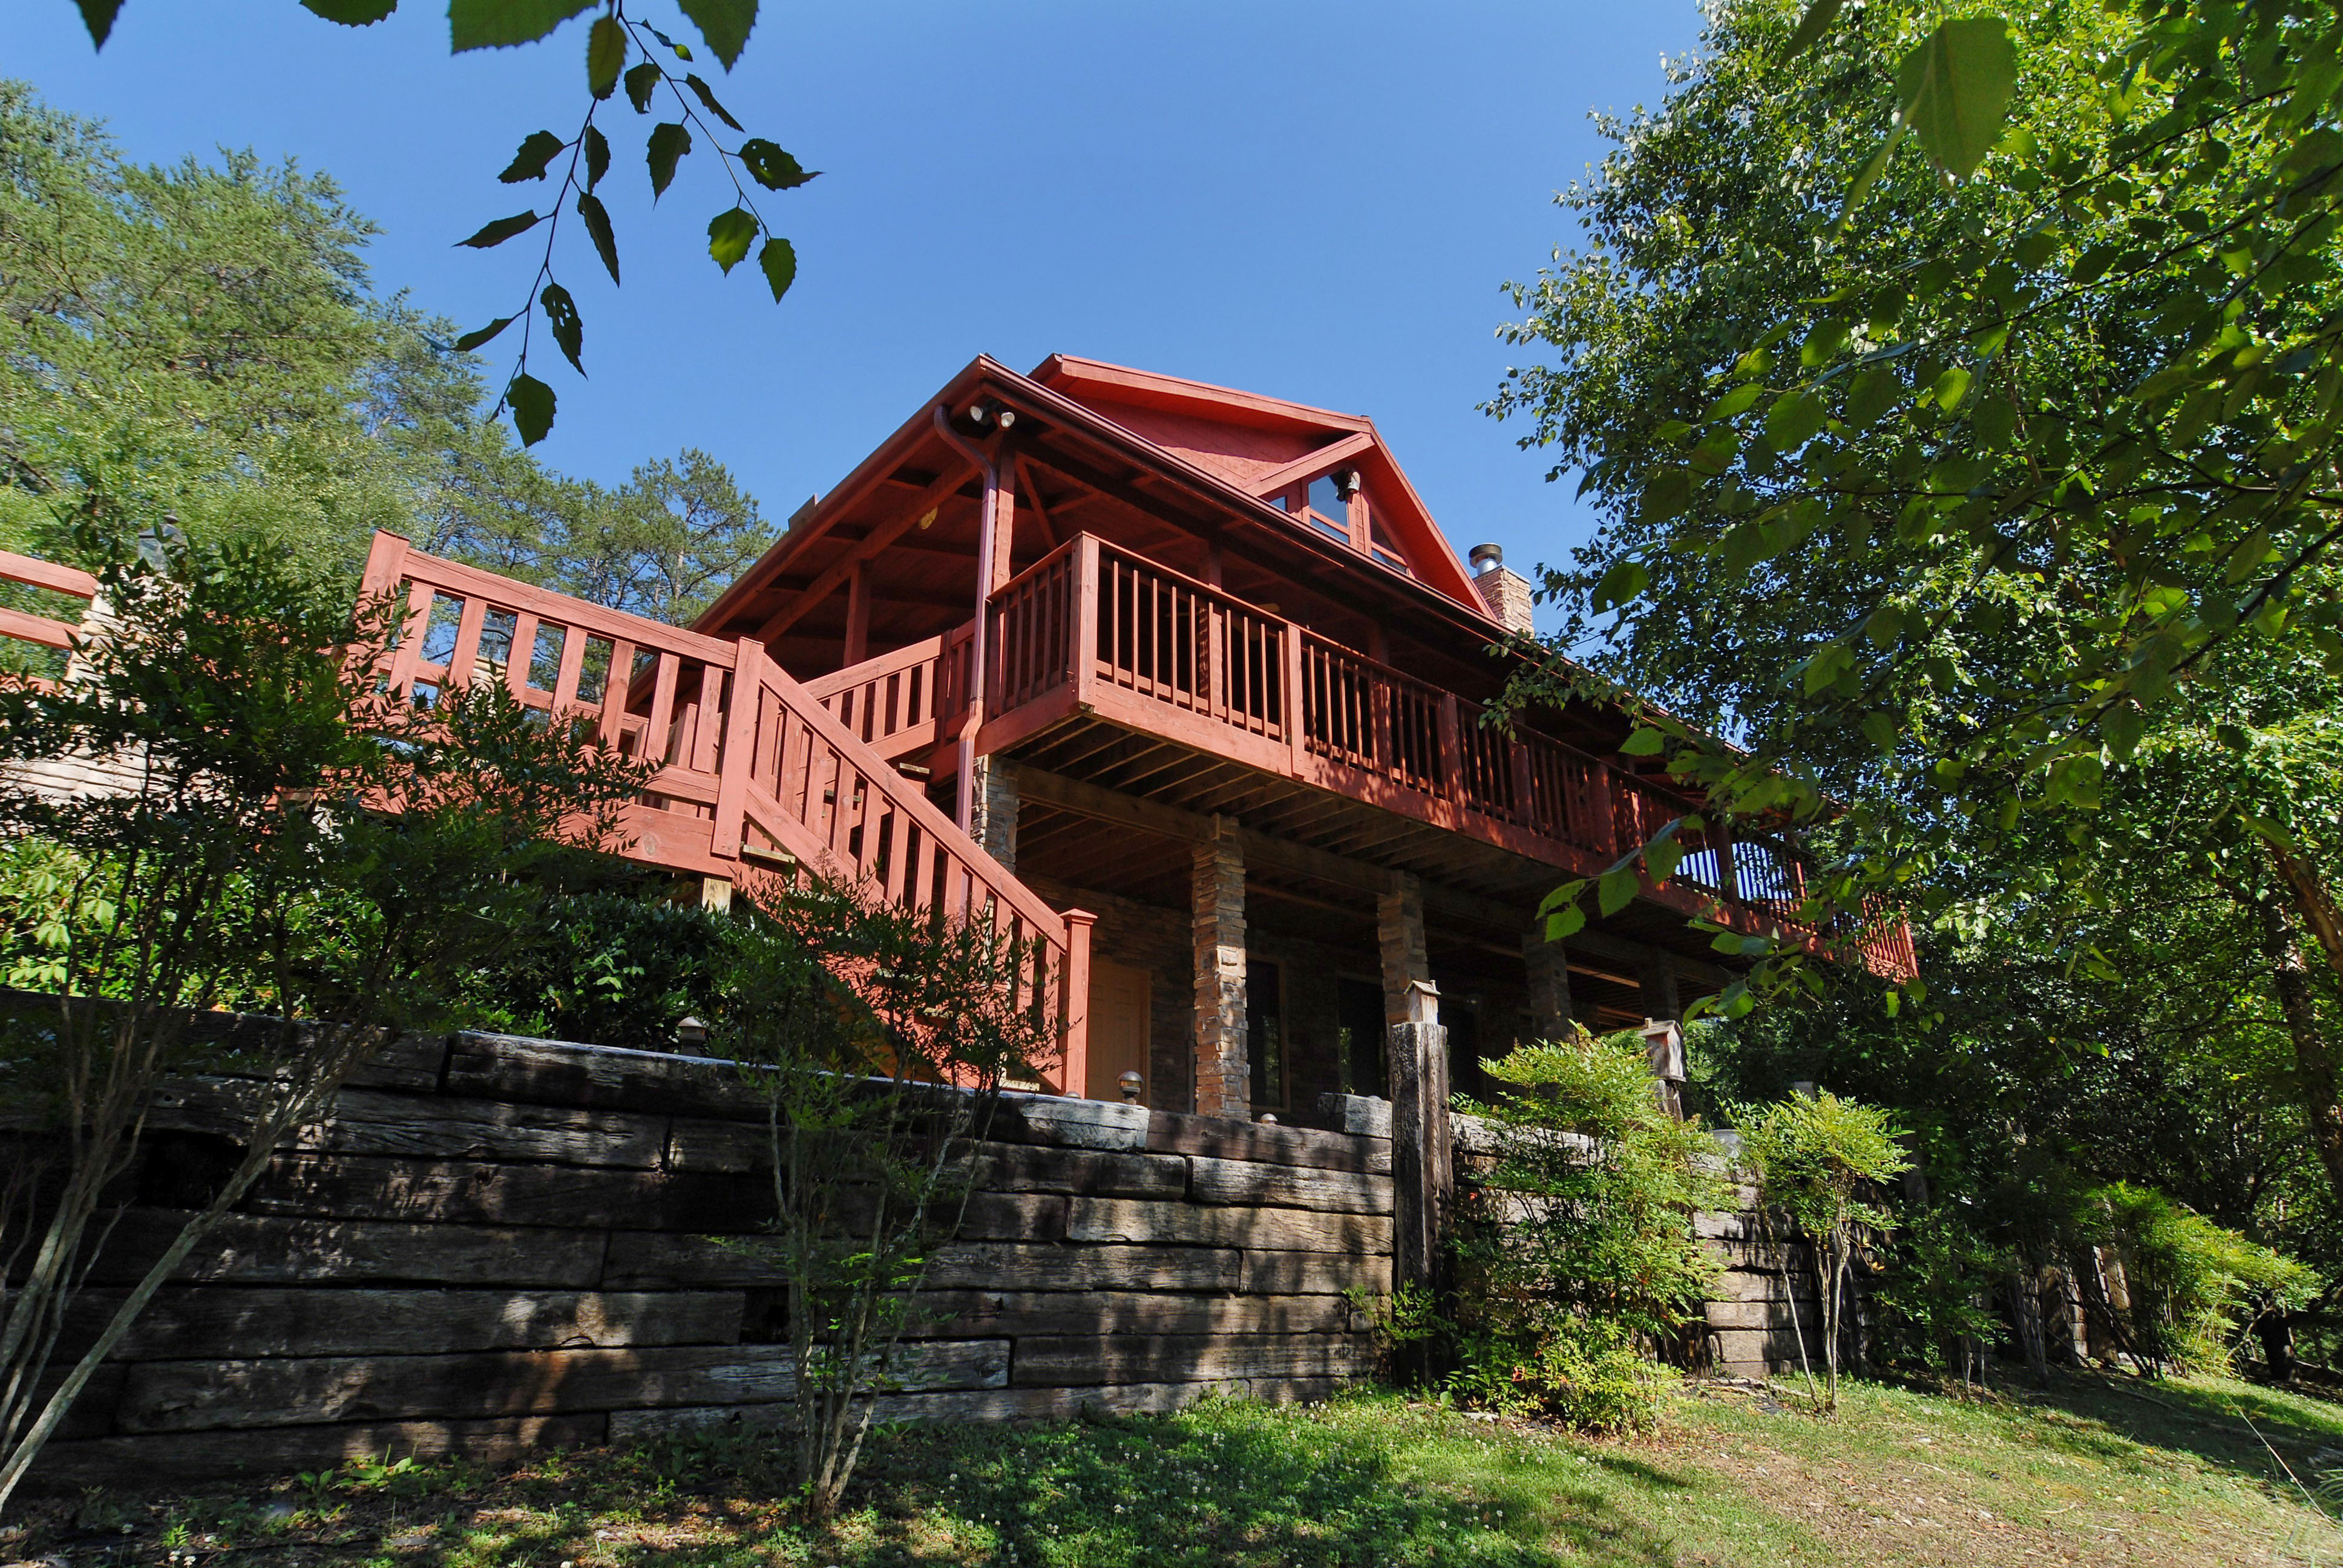 Pigeon Forge Two Bedroom Cabin plus a bonus room with a pool table, hot tub, and a nice yard close to dowtown Pigeon Forge.